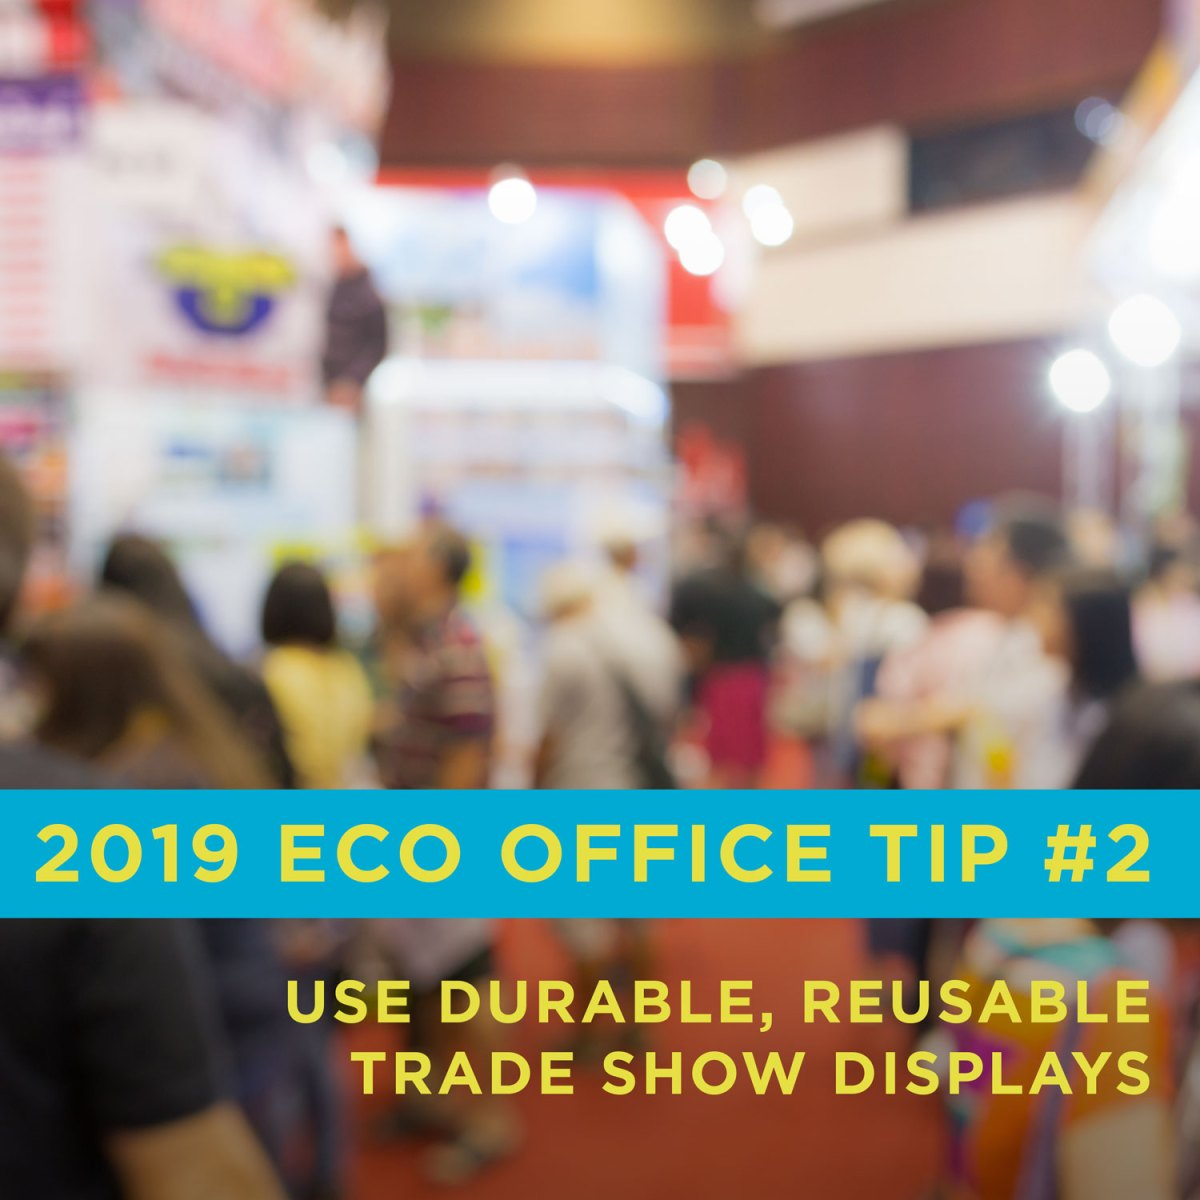 Eco Friendly Office Tip 2: Use durable, reusable trade show displays